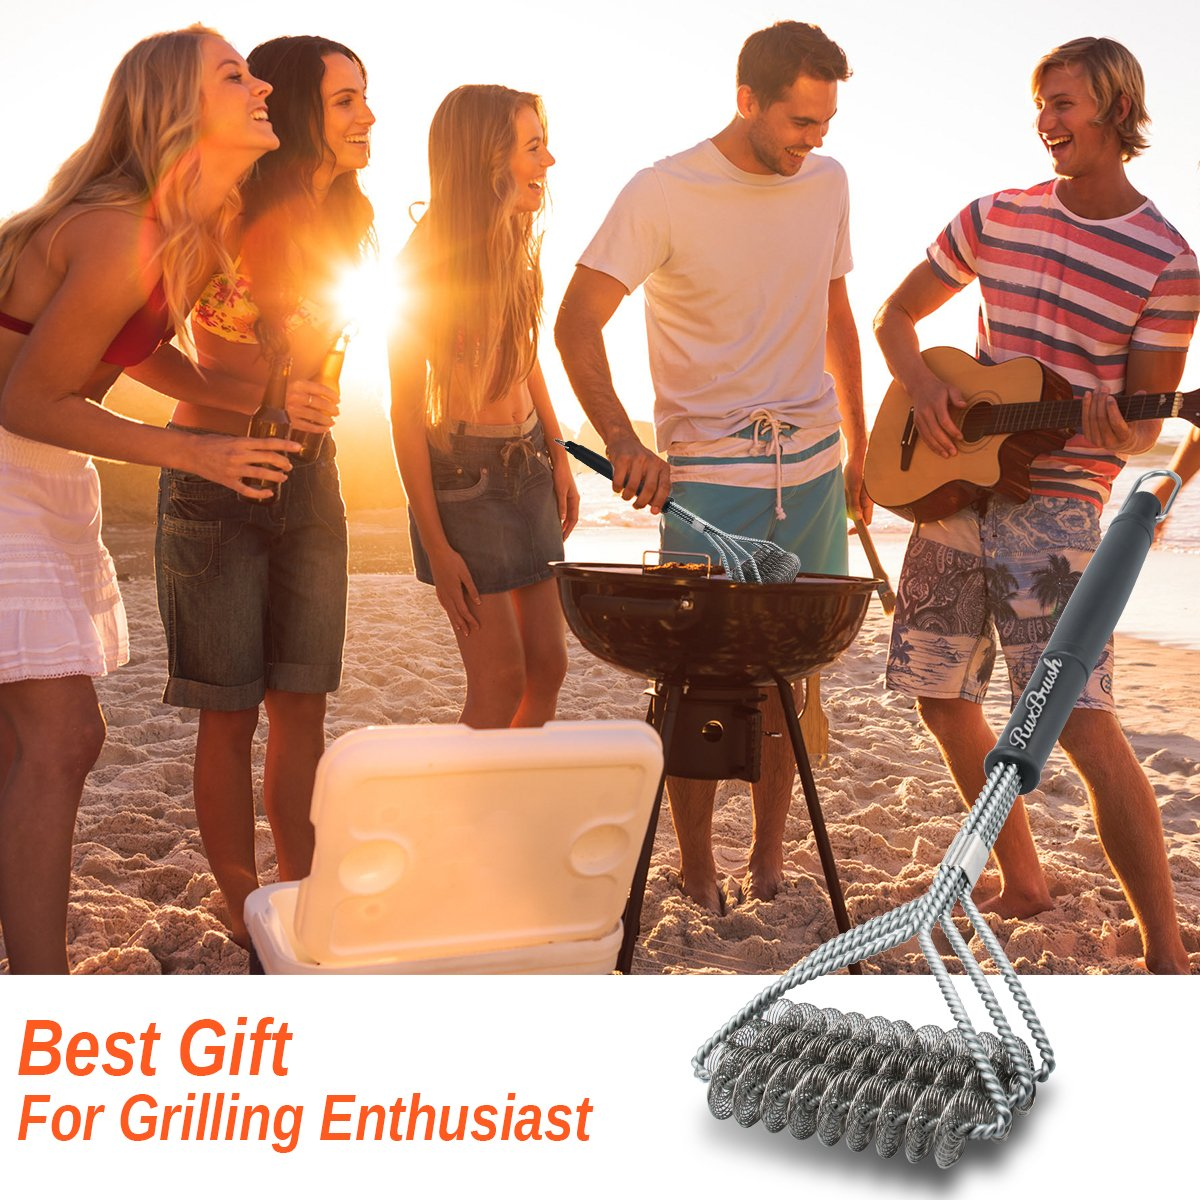 Grill Brush and Scraper Grill Brush Bristle Free - Grill Brsh 18'' for Porcelain Grates Outdoor Stainless Steel Grill Cleaner Tool - BBQ Safe Scraper Barbeque Cleaning Accessories Stainl … by RuxBrush (Image #4)